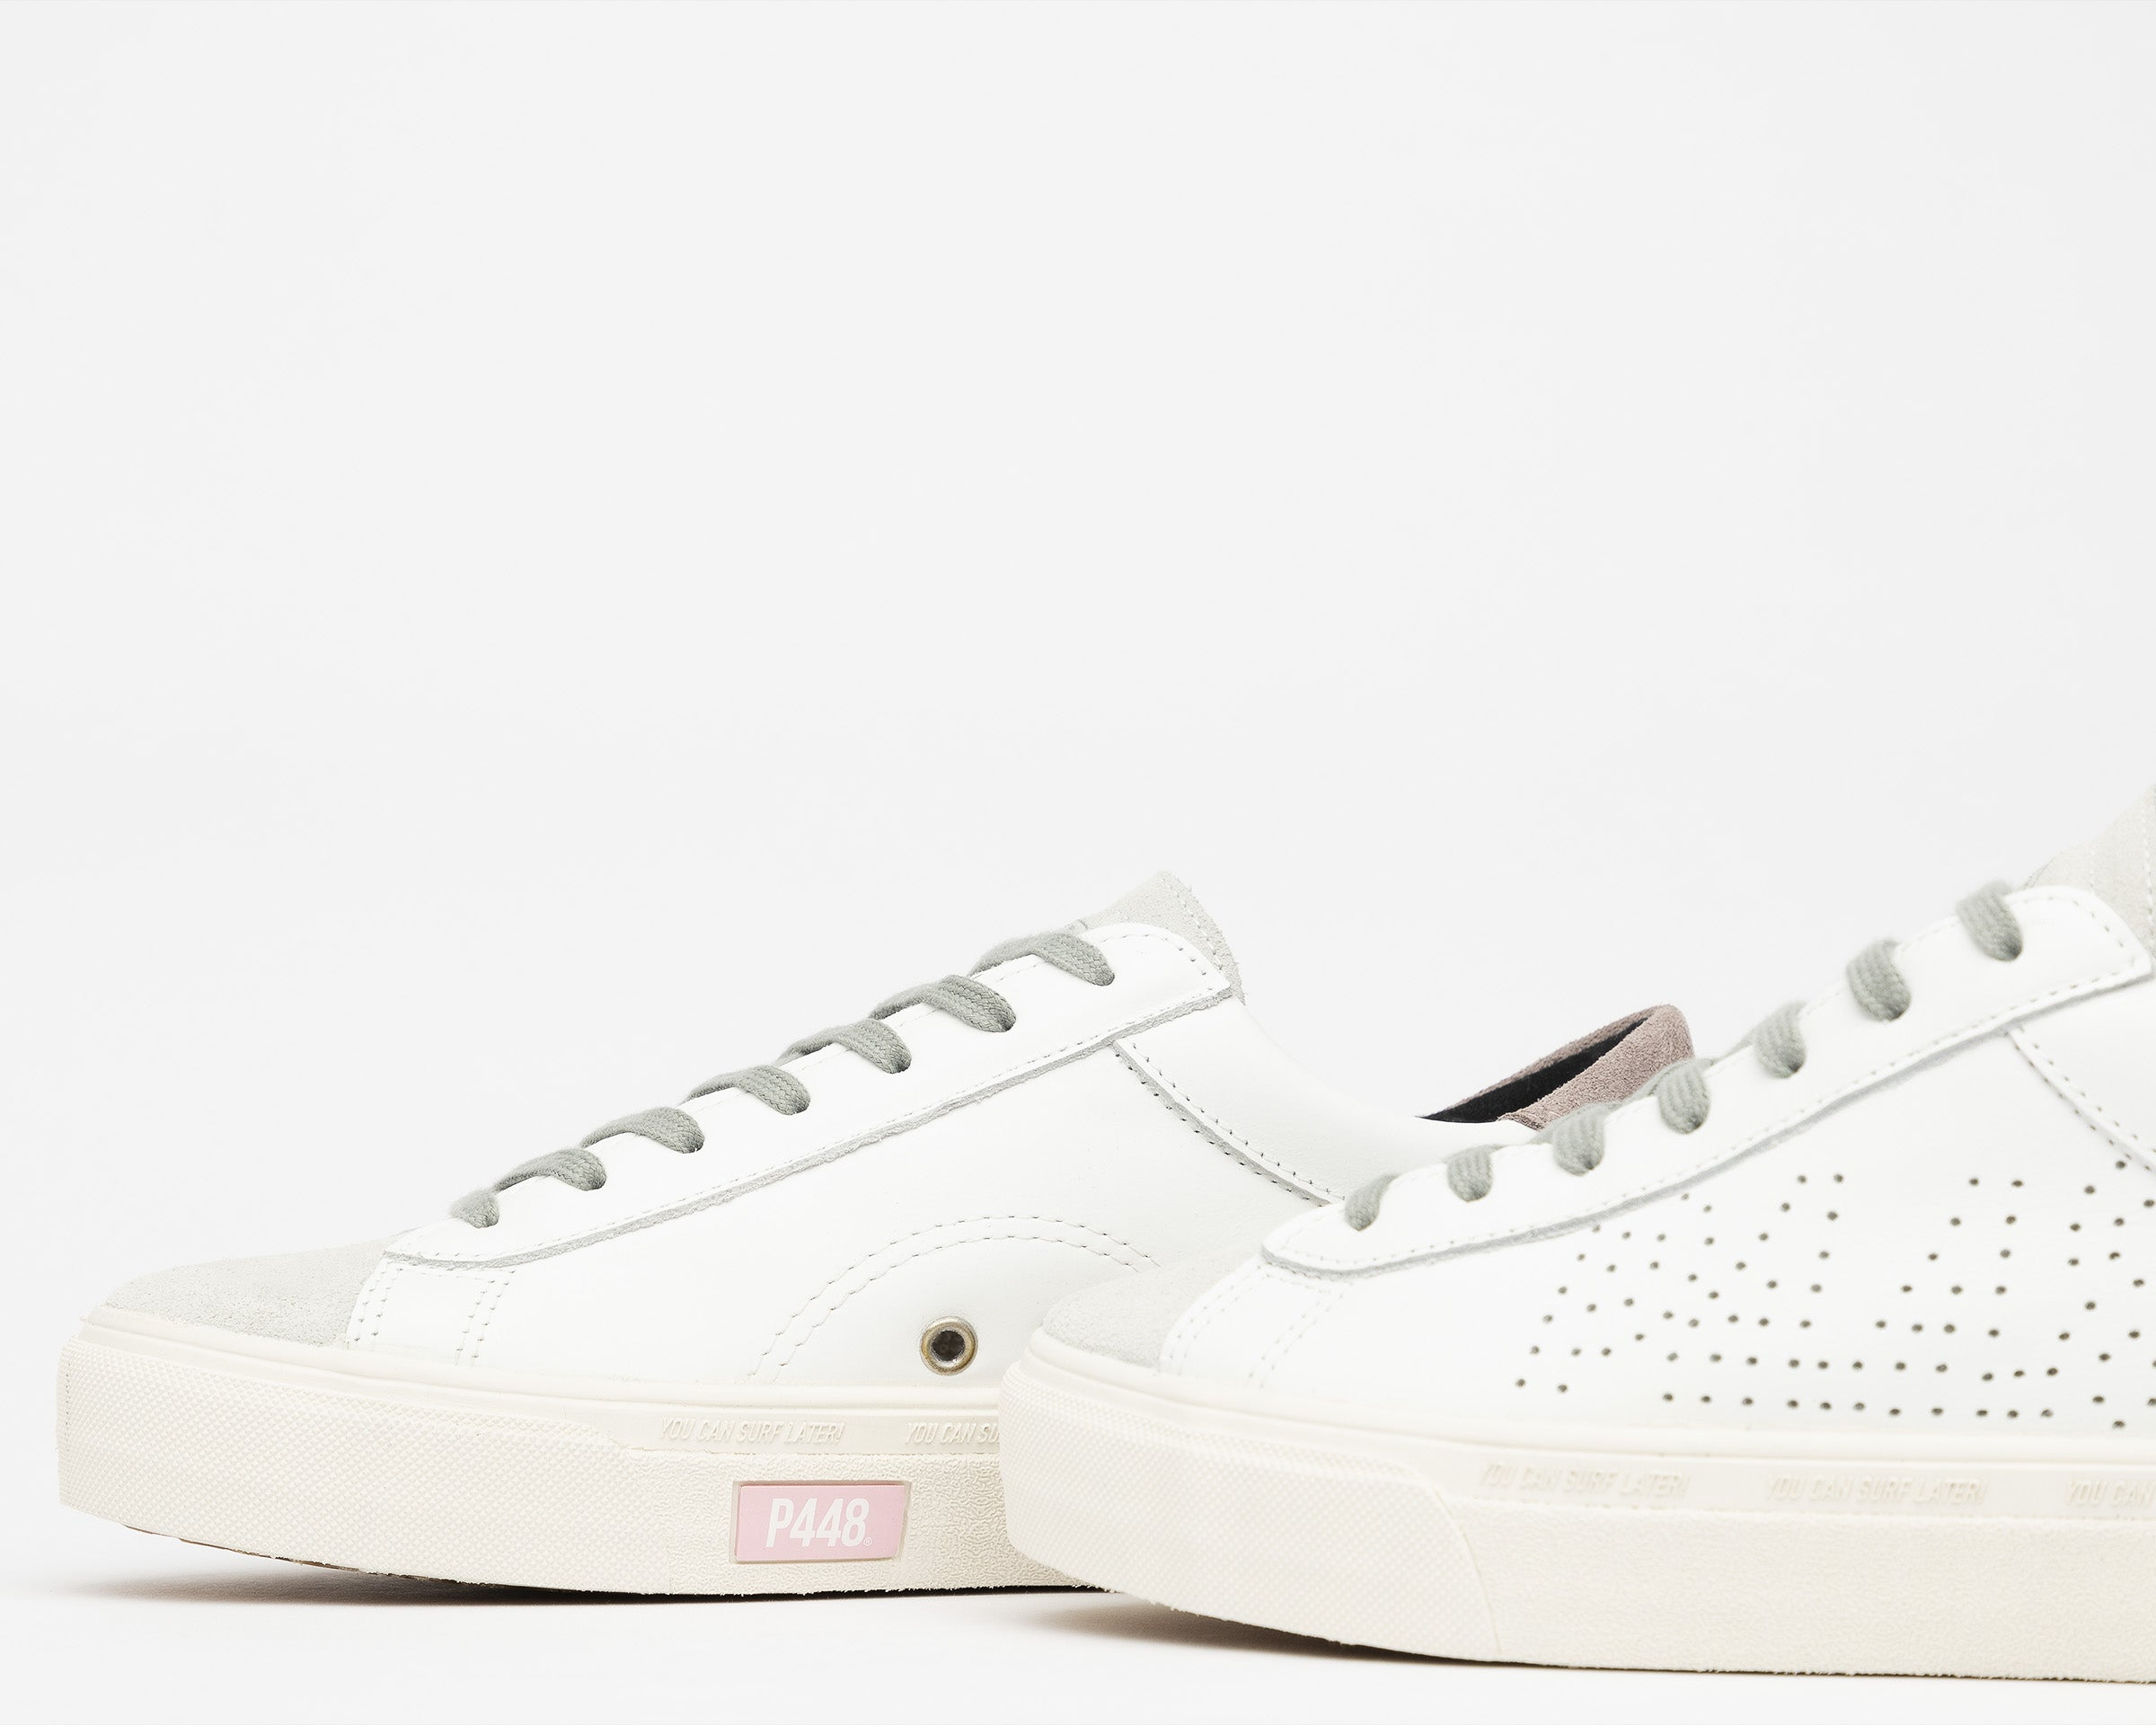 Y.C.S.L. Vibram Low-Top Sneaker in White/Pink - Detail 3